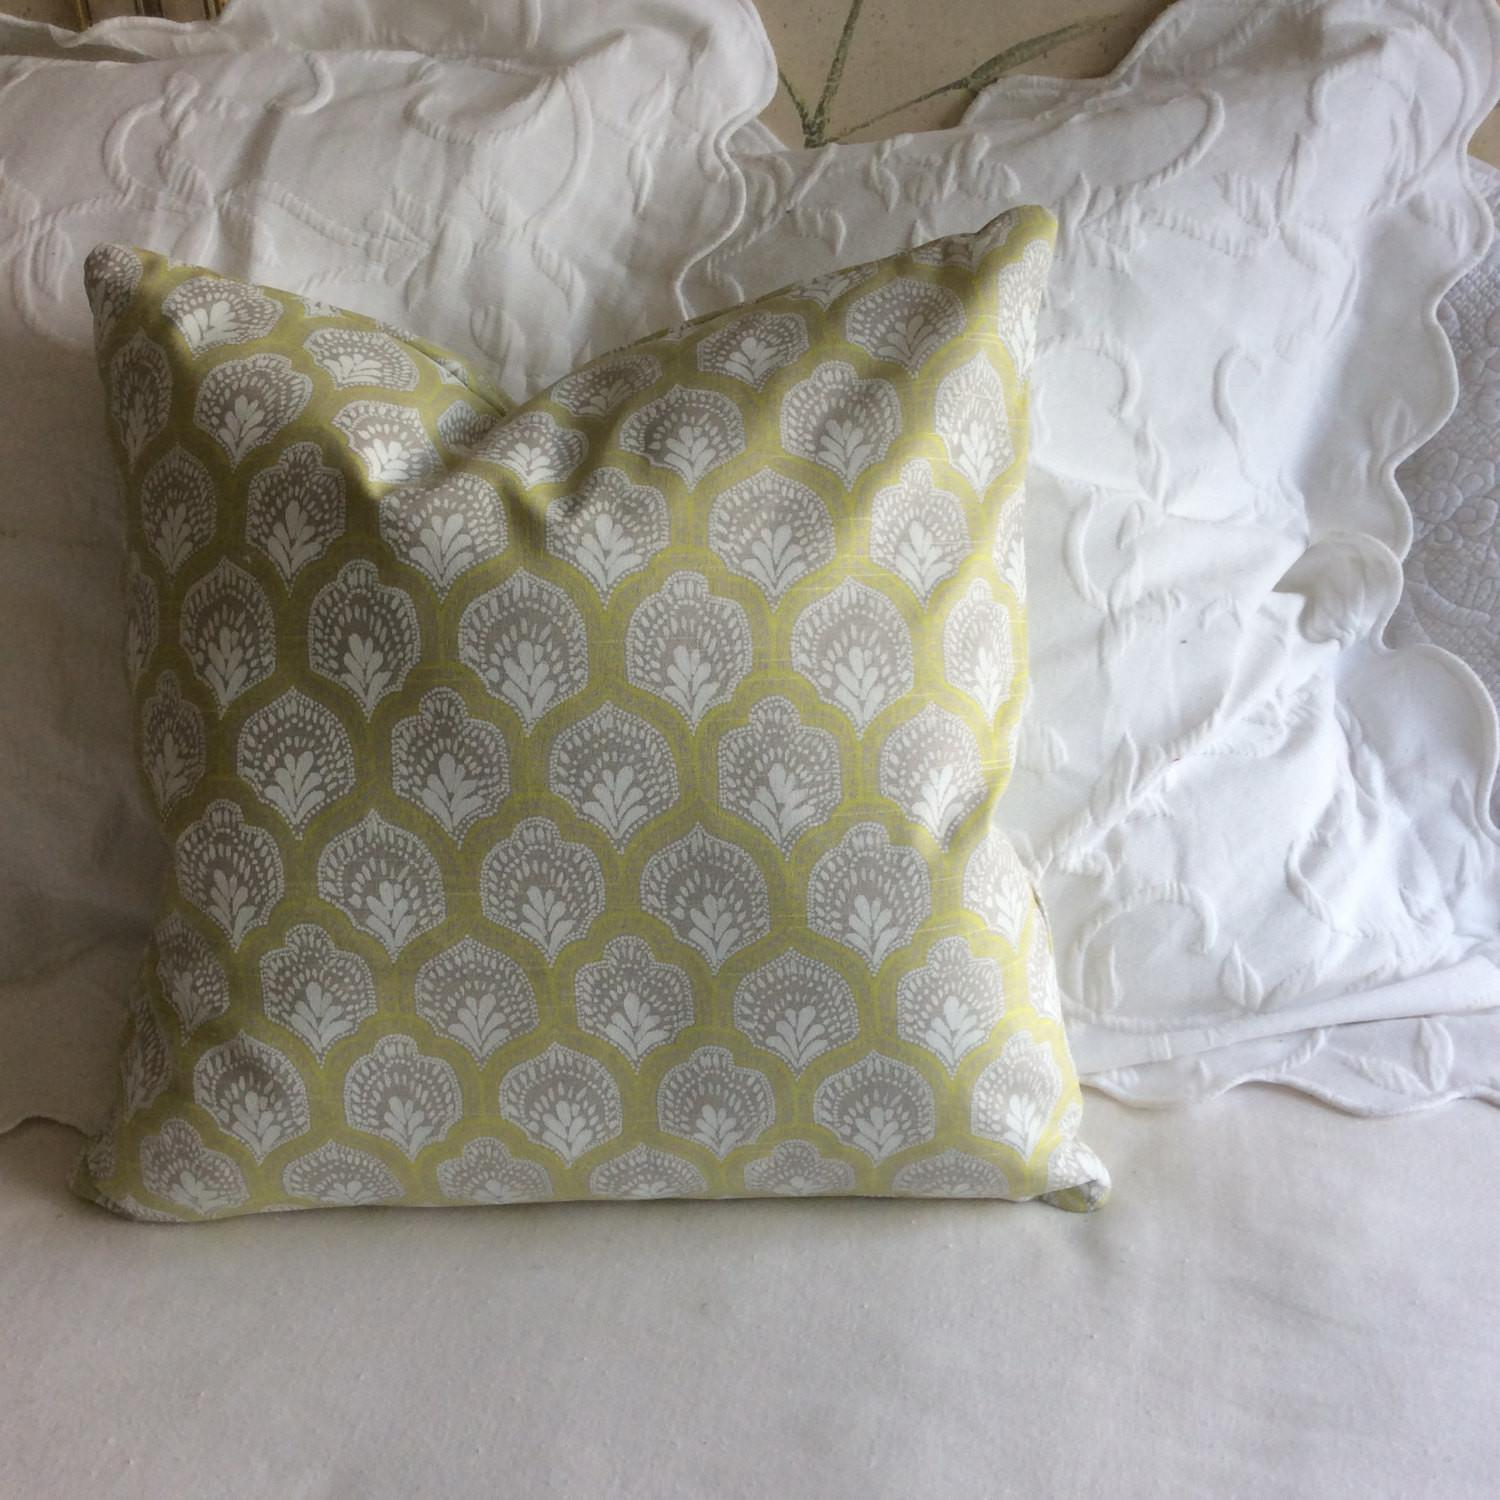 Isla Spring Decorative Pillow Cover